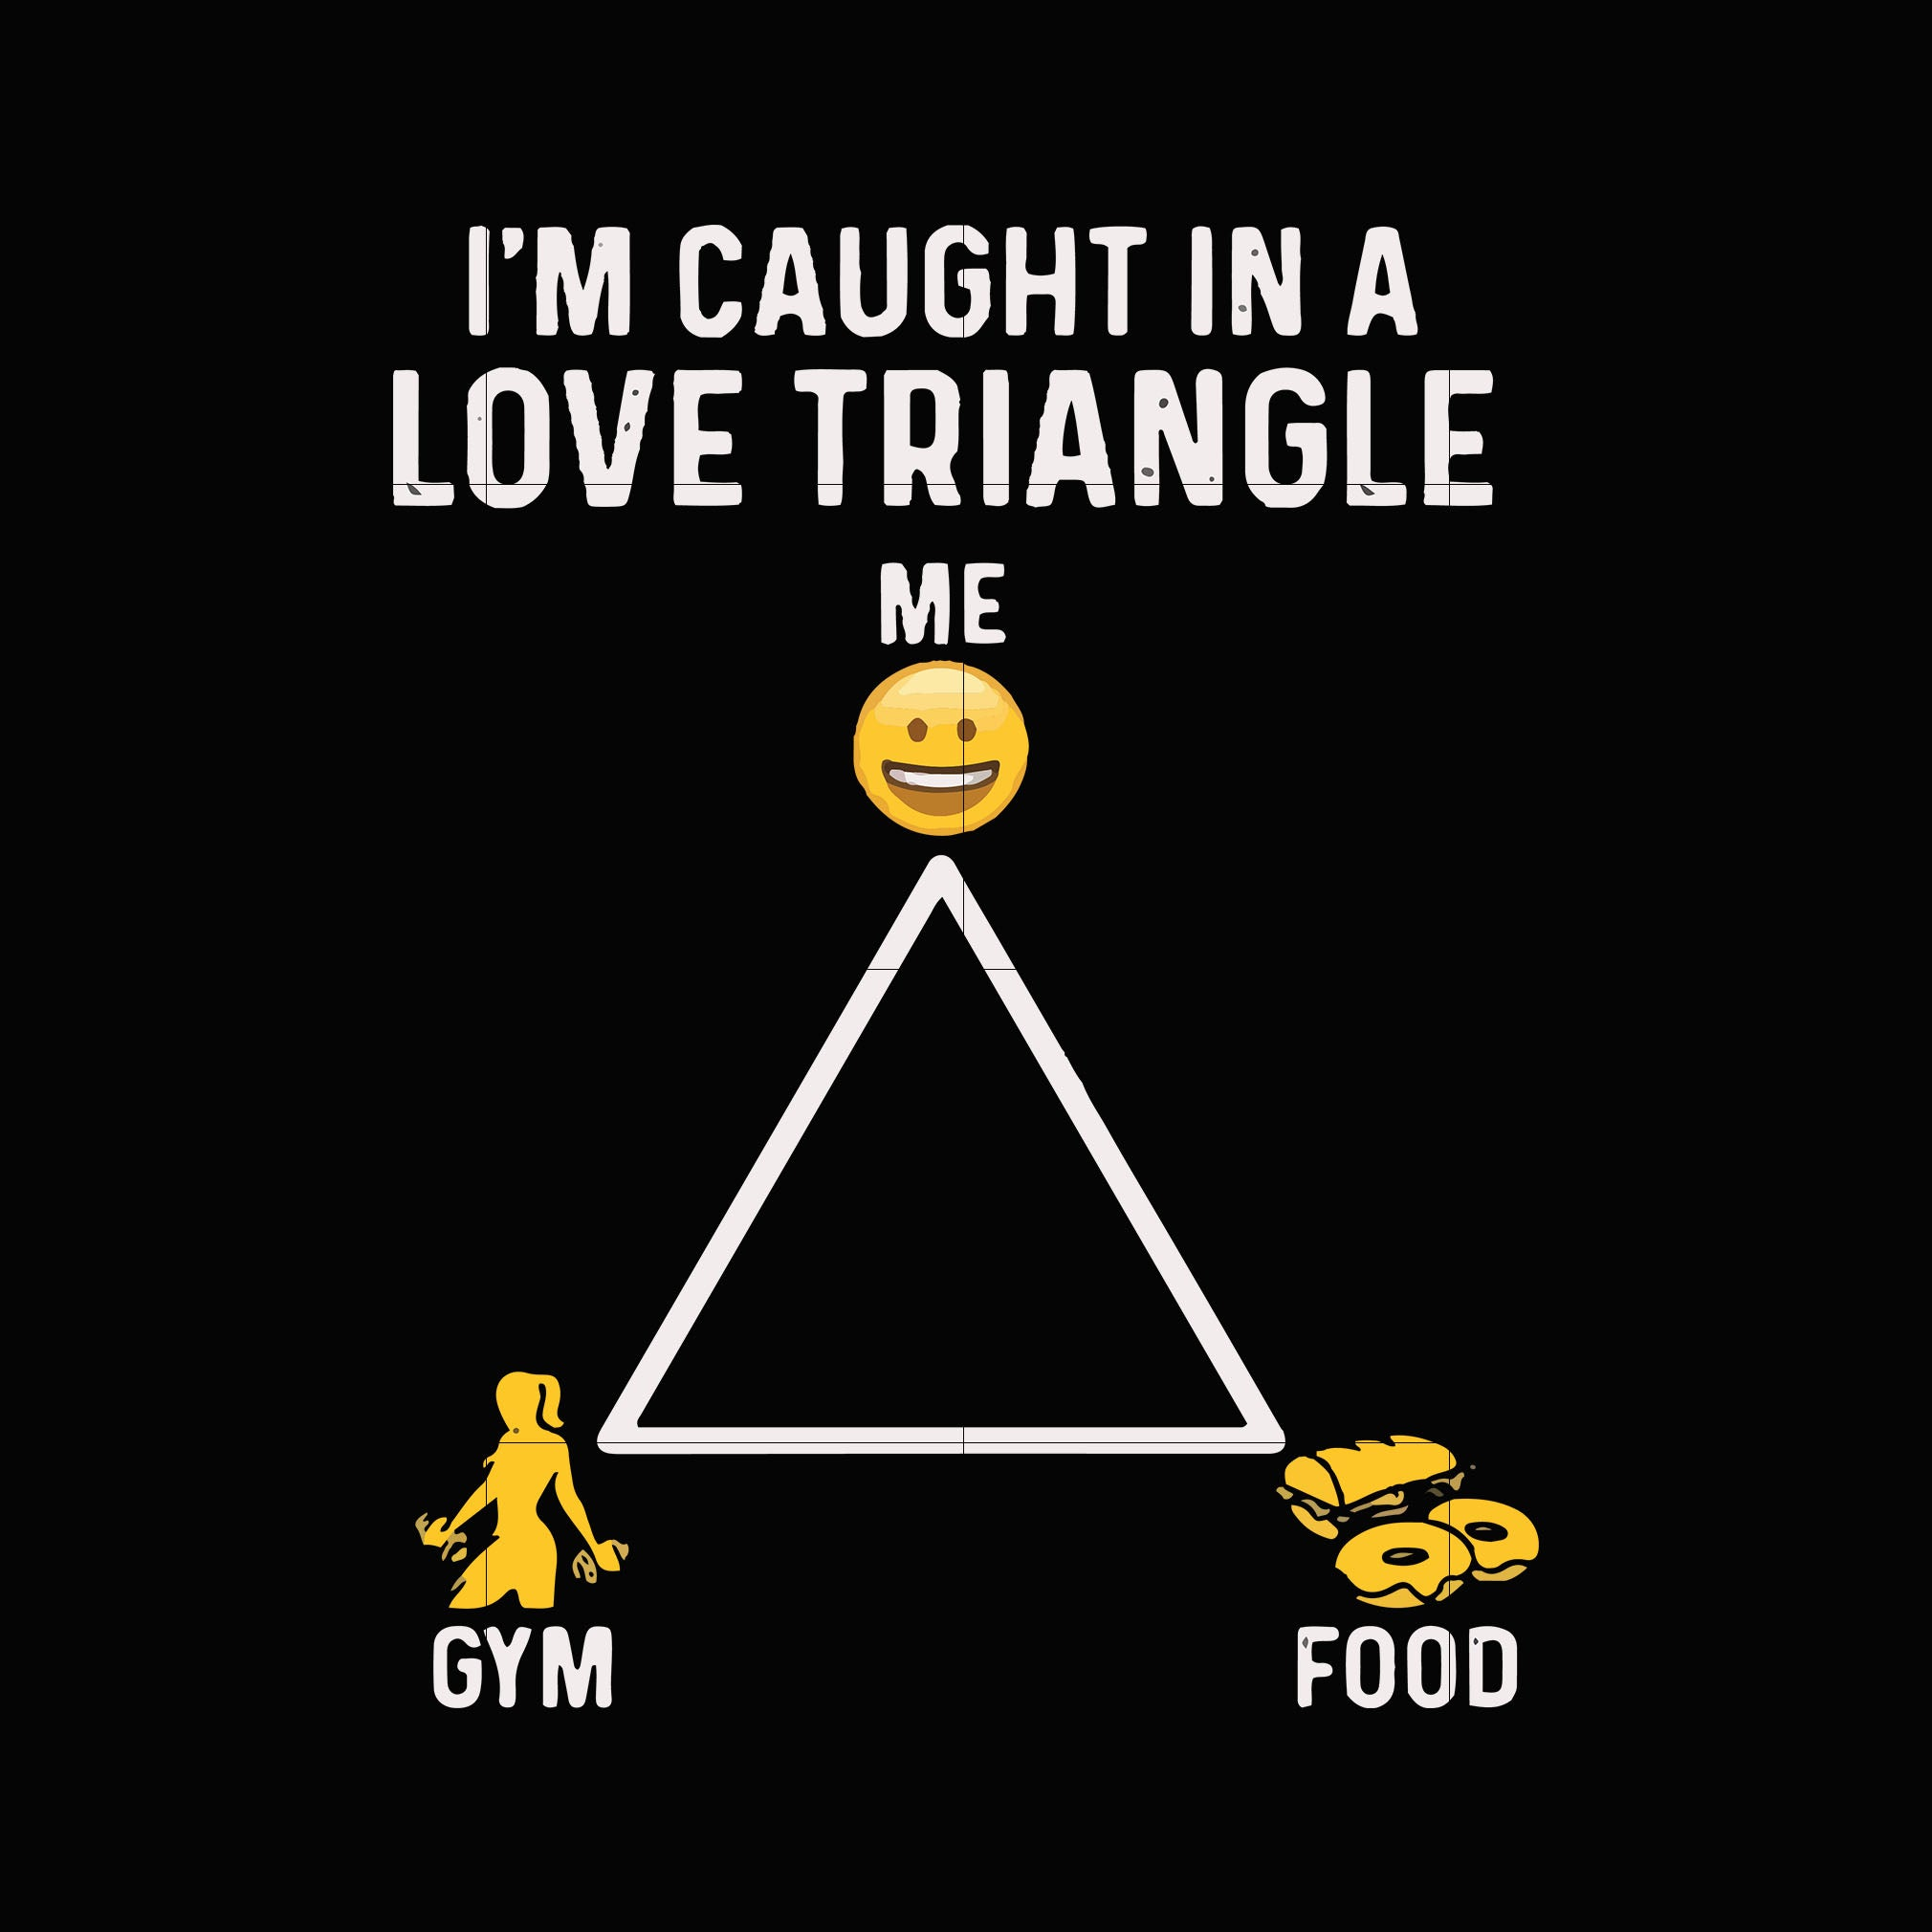 I'm caught in a love triangle  svg ,dxf,eps,png digital file